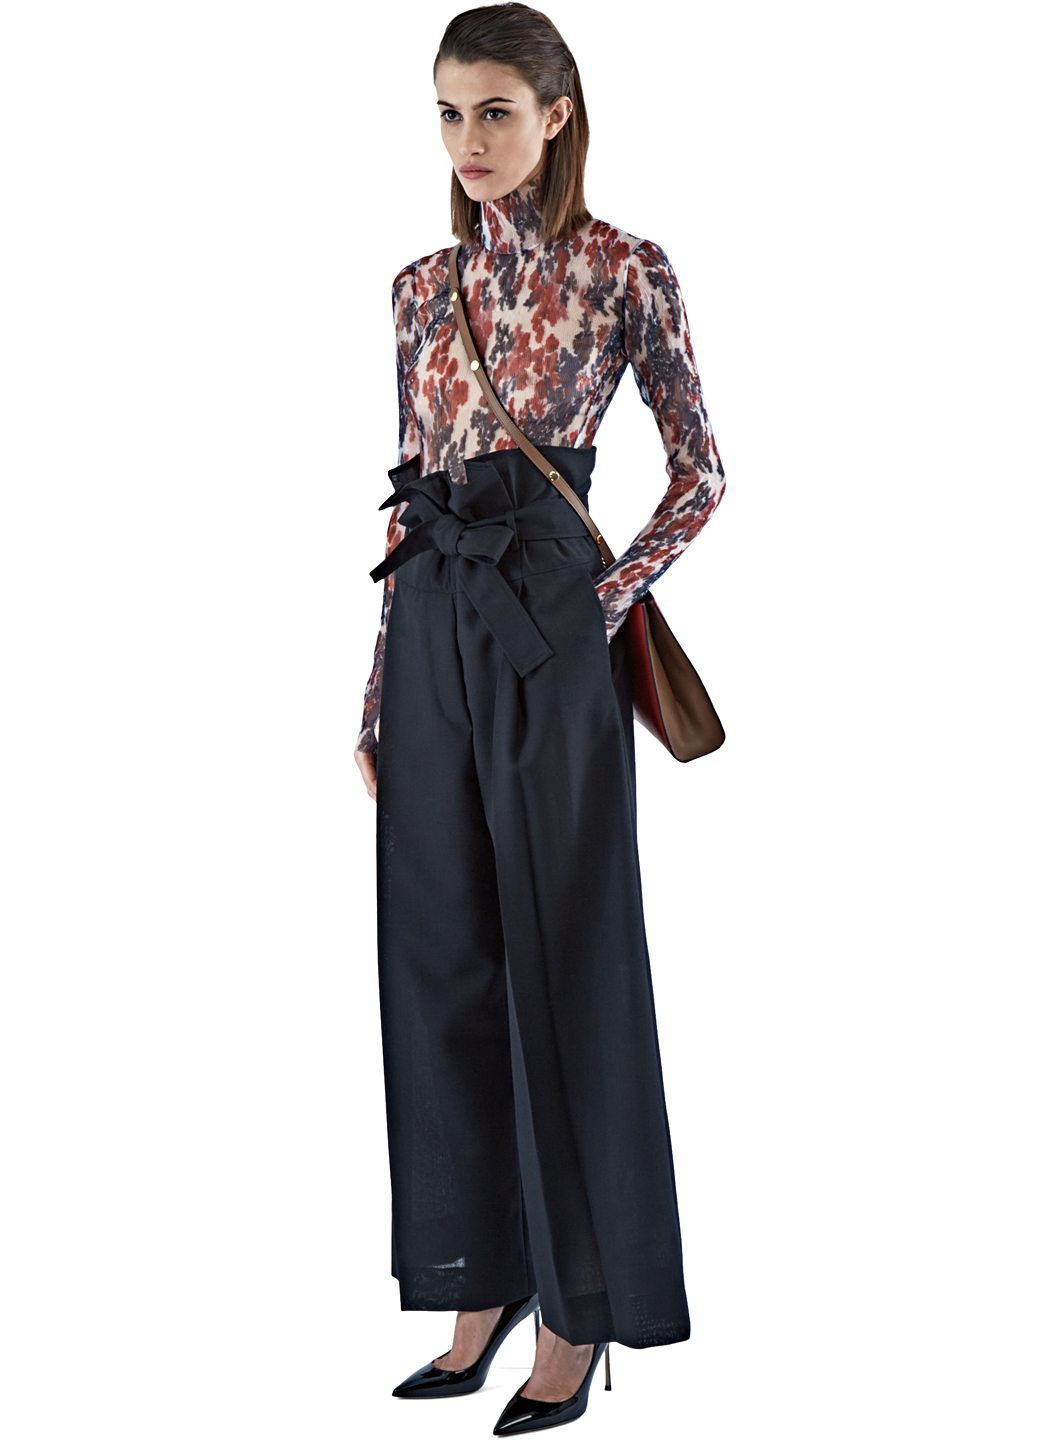 Marni Women's High-waisted Wide Leg Pants In Black in Black | Lyst